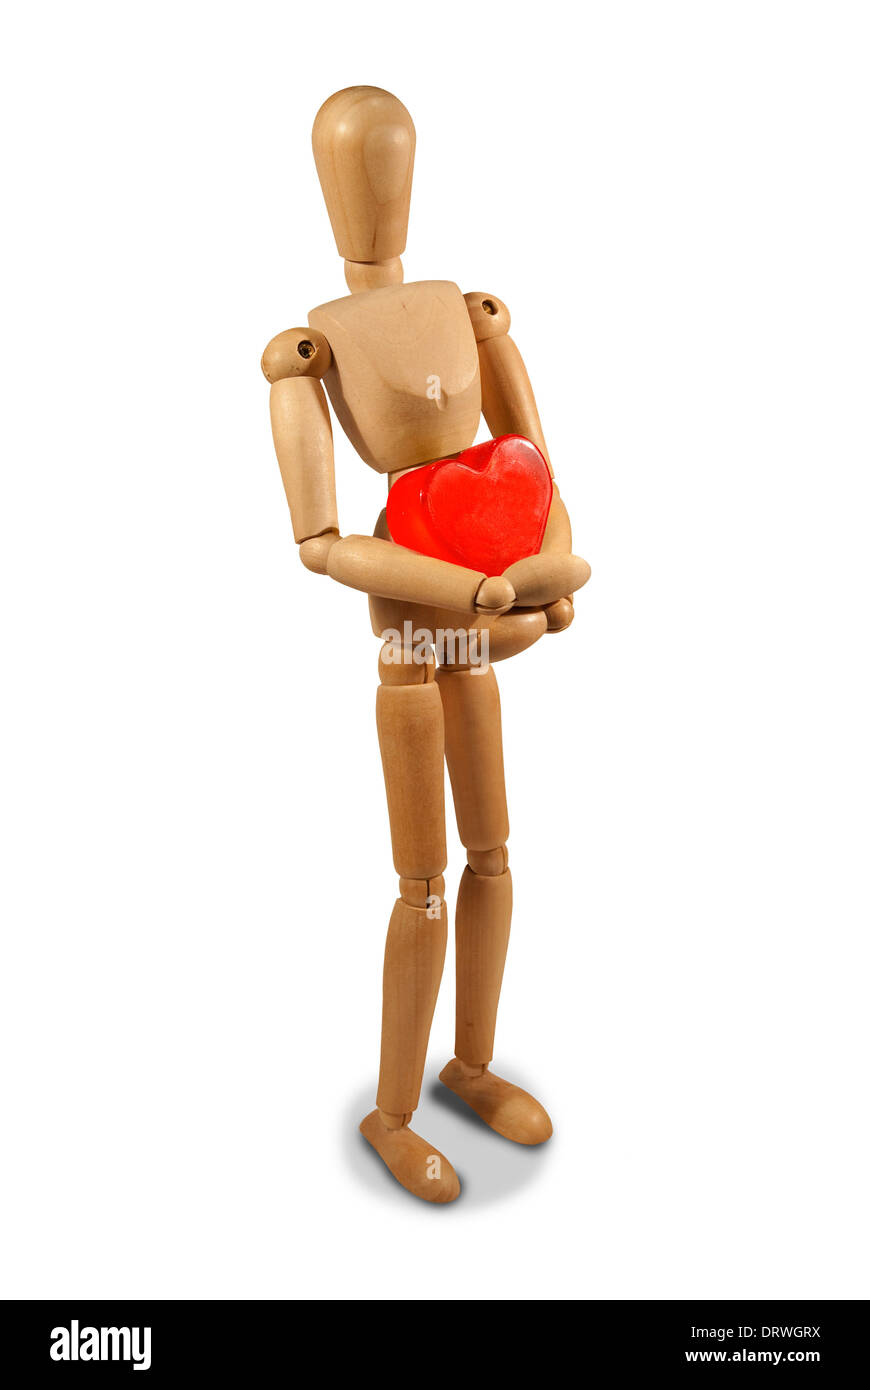 Valentine's Day, red heart, Health - Stock Image